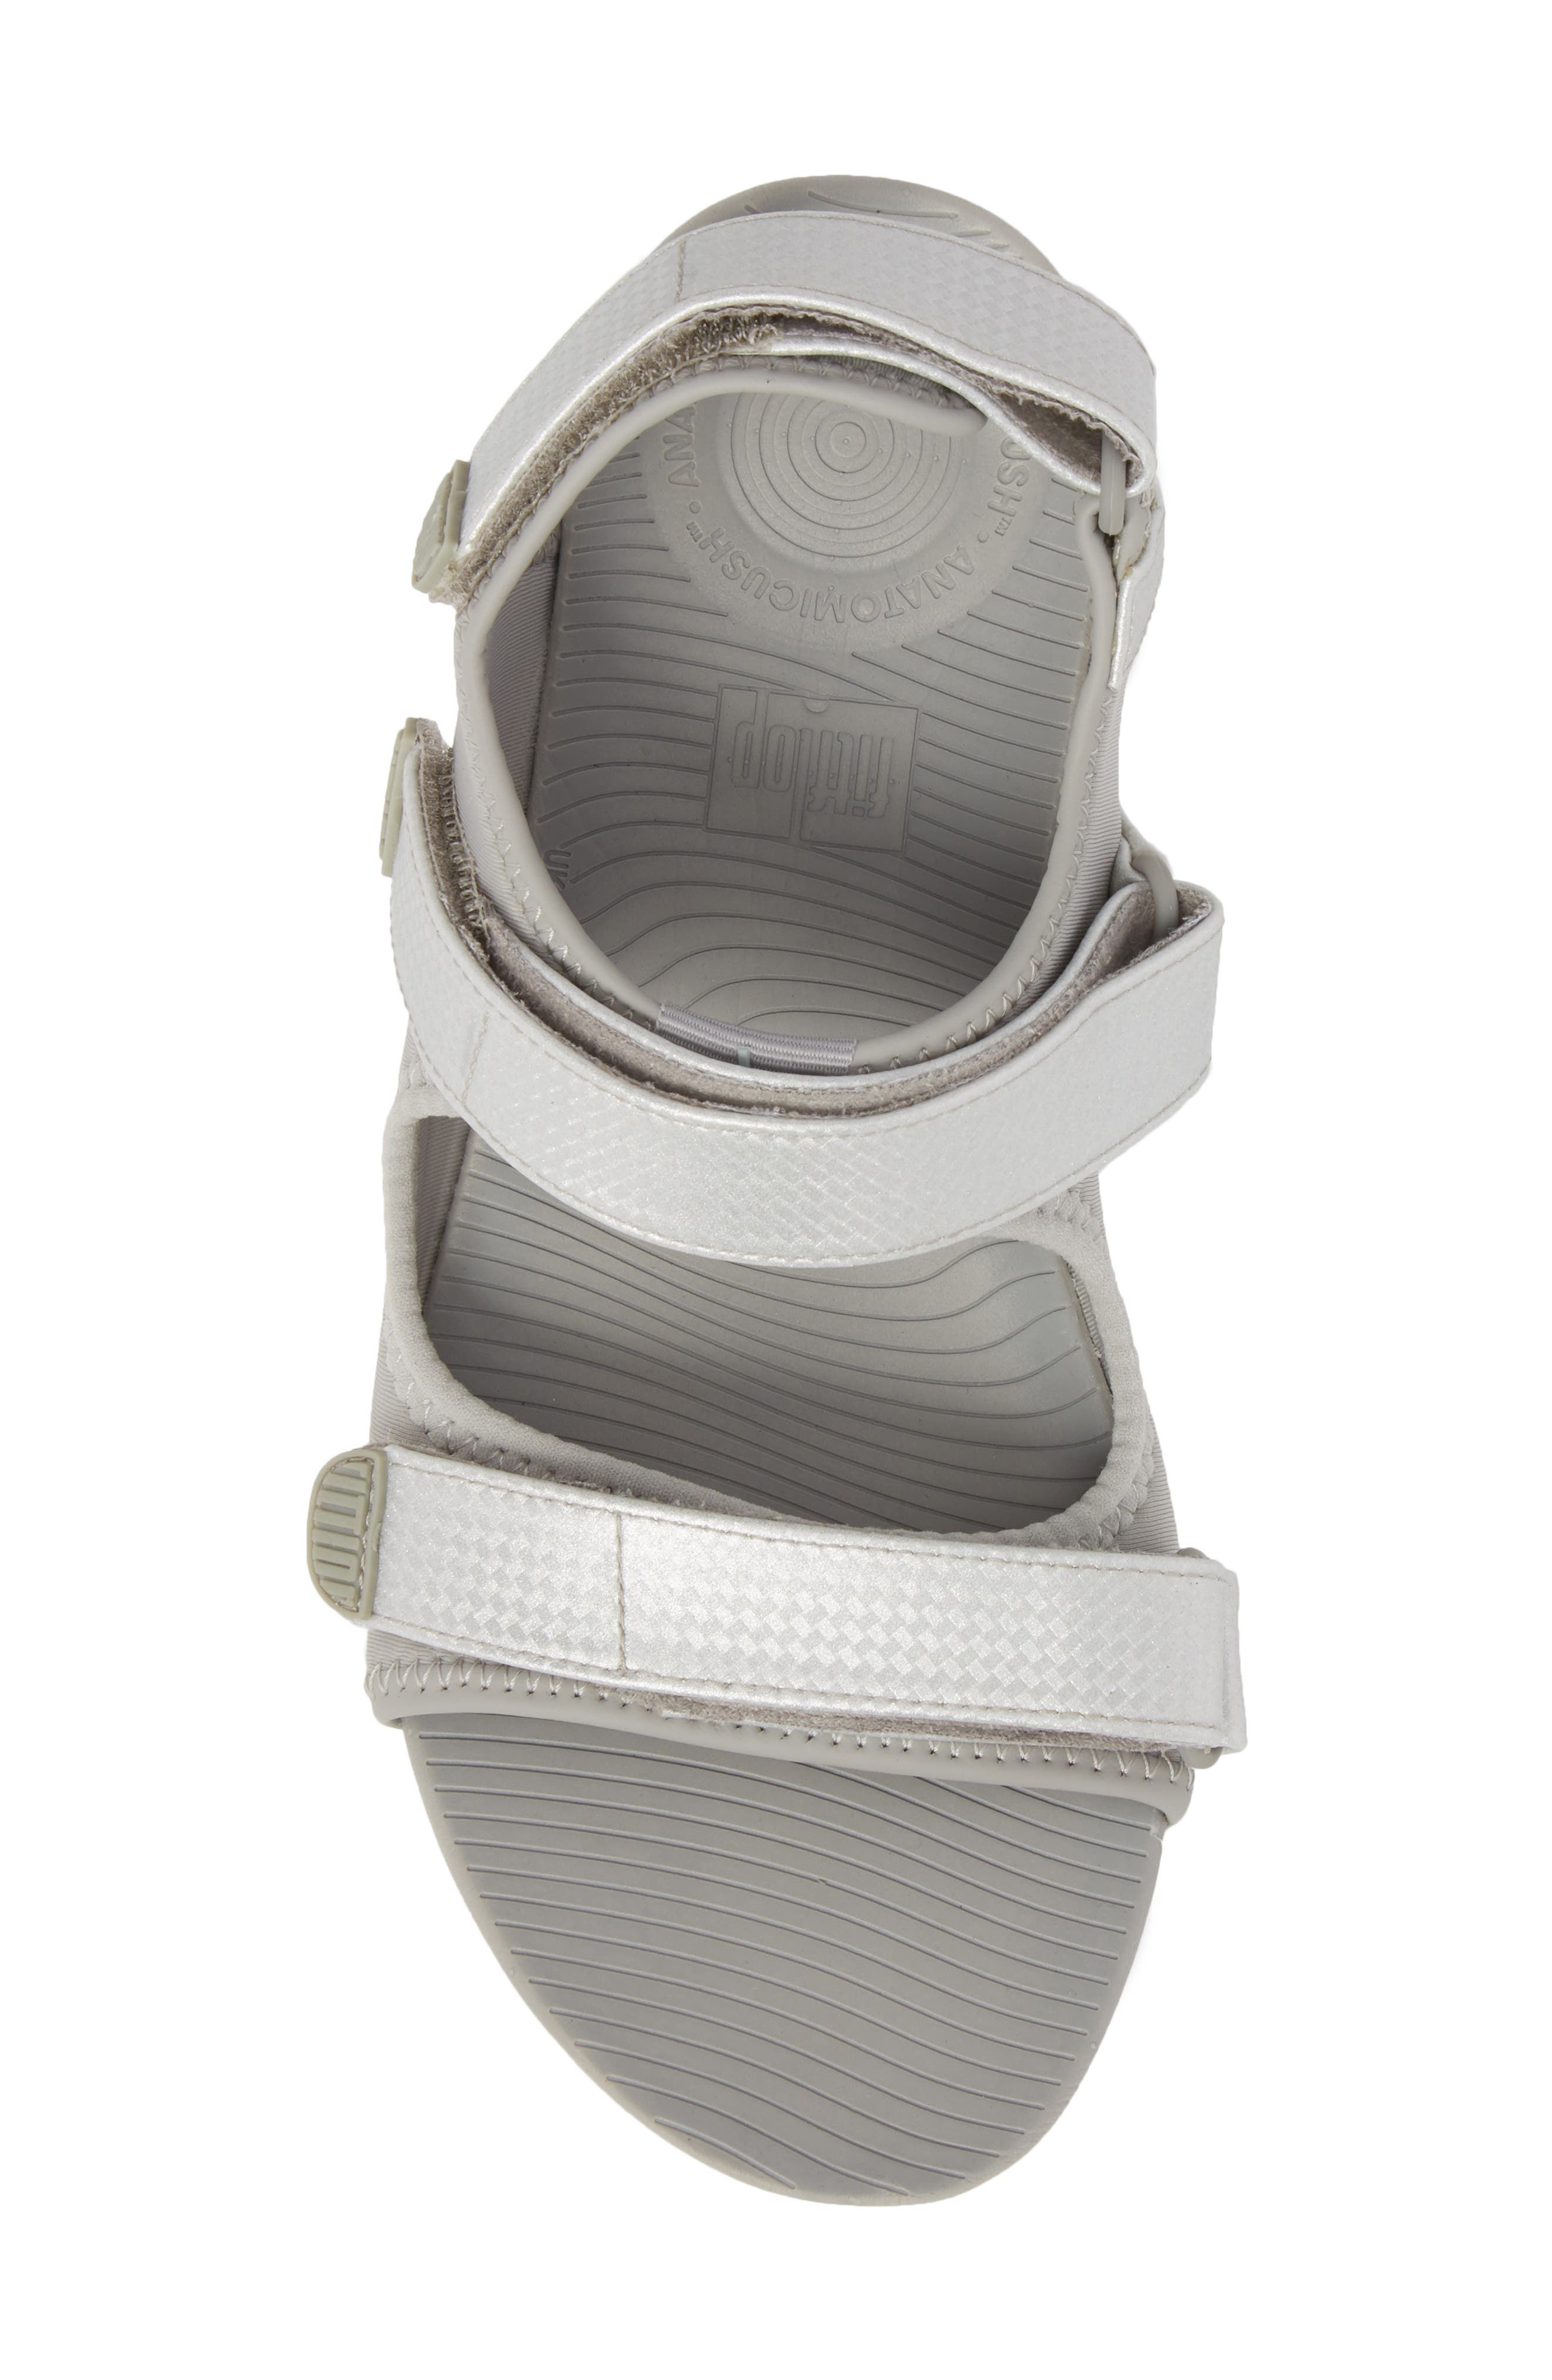 FitfFlop Neoflex<sup>™</sup> Back Strap Sandal,                             Alternate thumbnail 5, color,                             SOFT GREY/ SILVER LEATHER